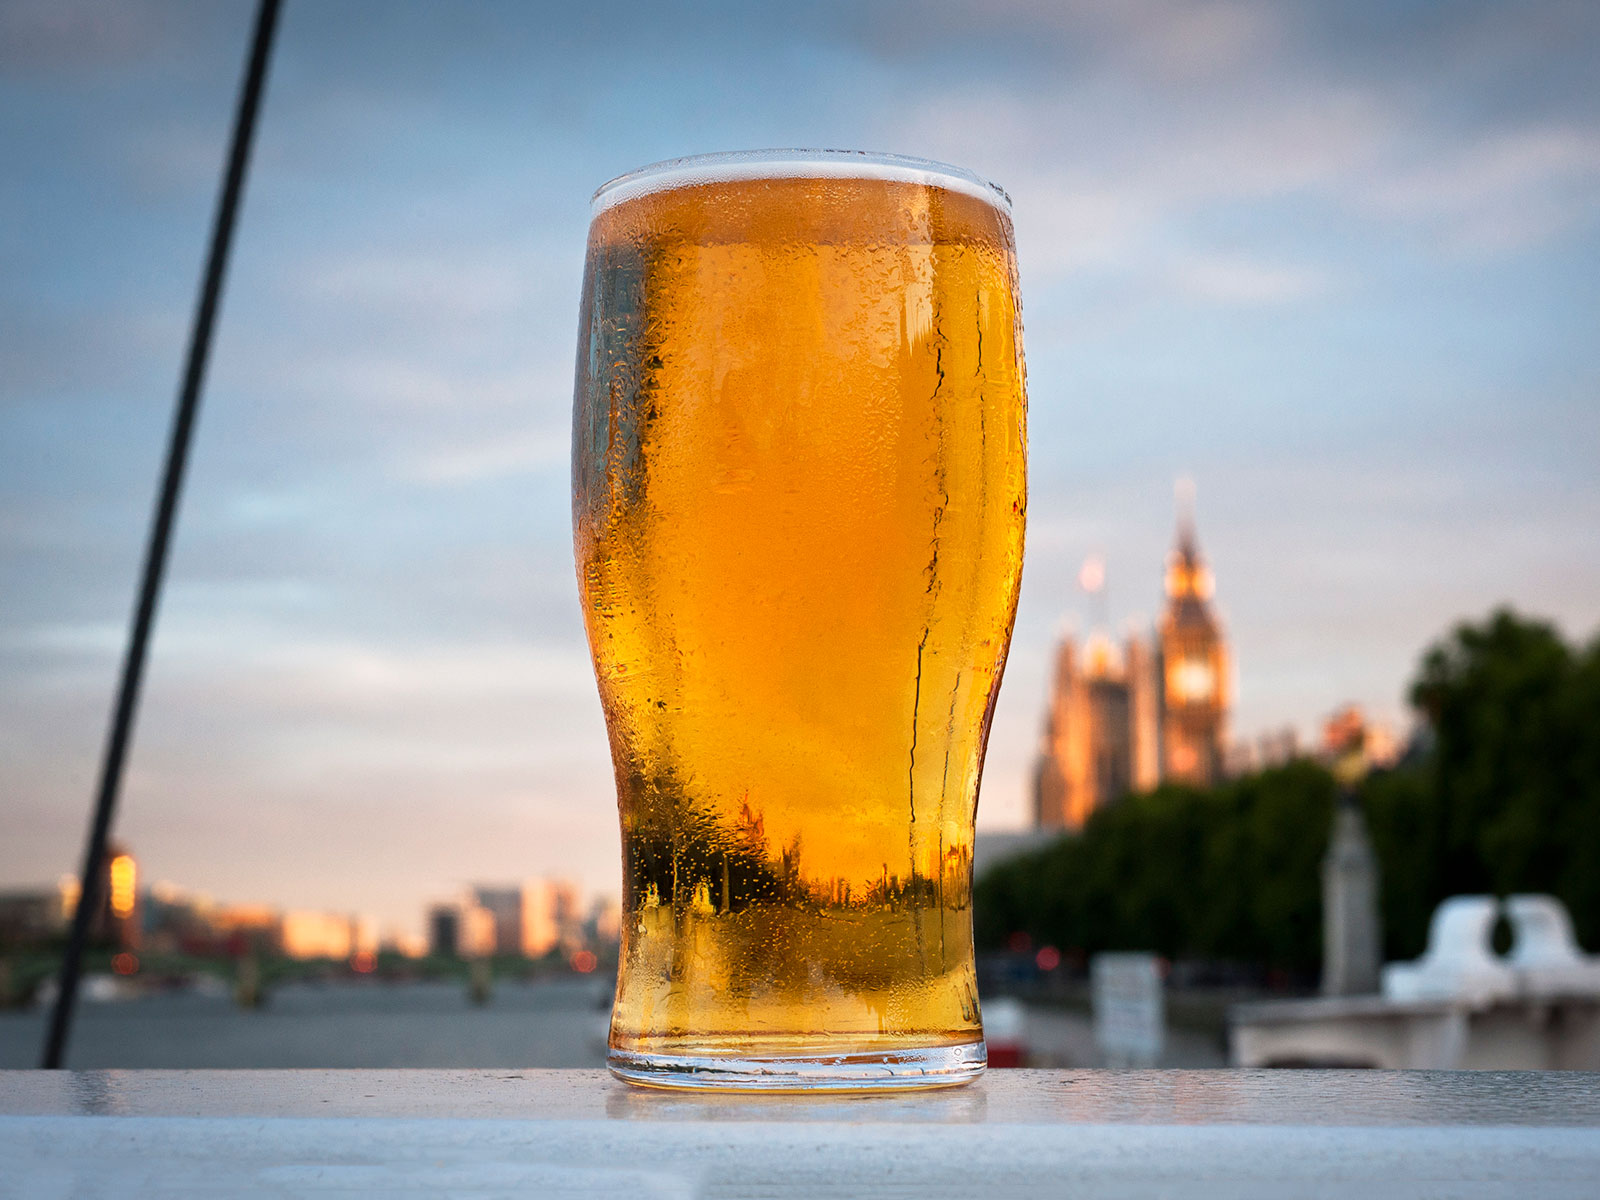 london beer isn't the priciest